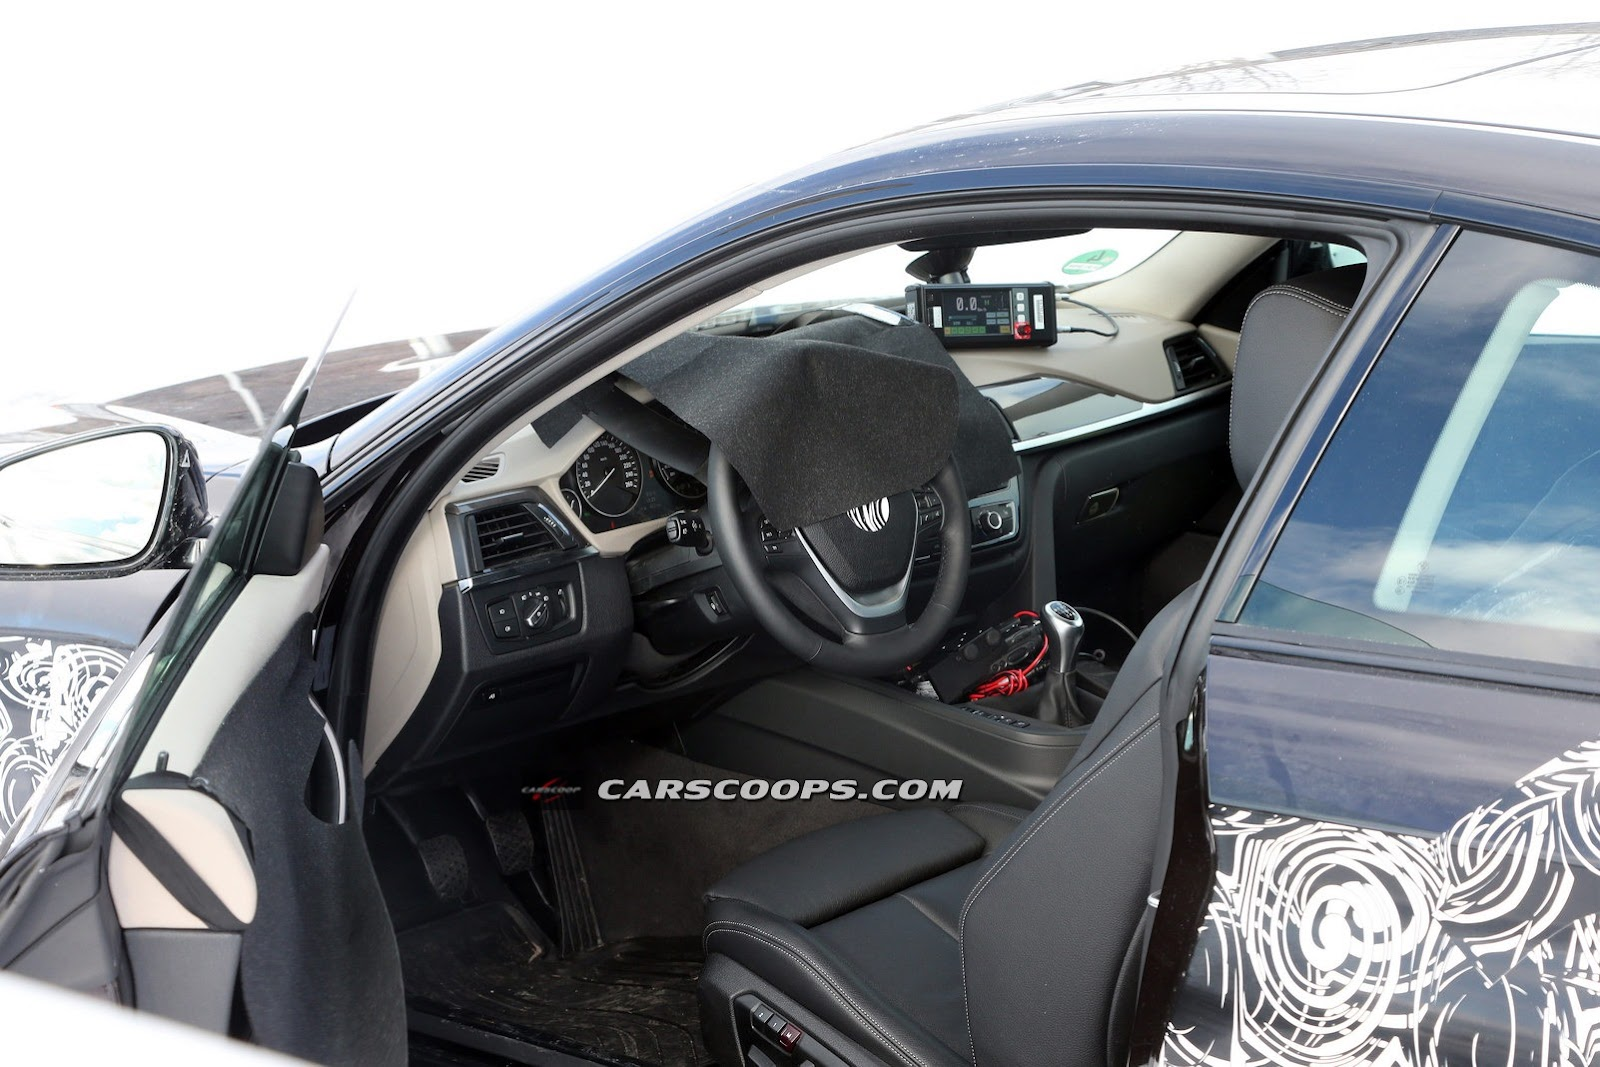 New Spy Shots Of BMW Series Interior BMW Series Forums - Bmw 4 series interior